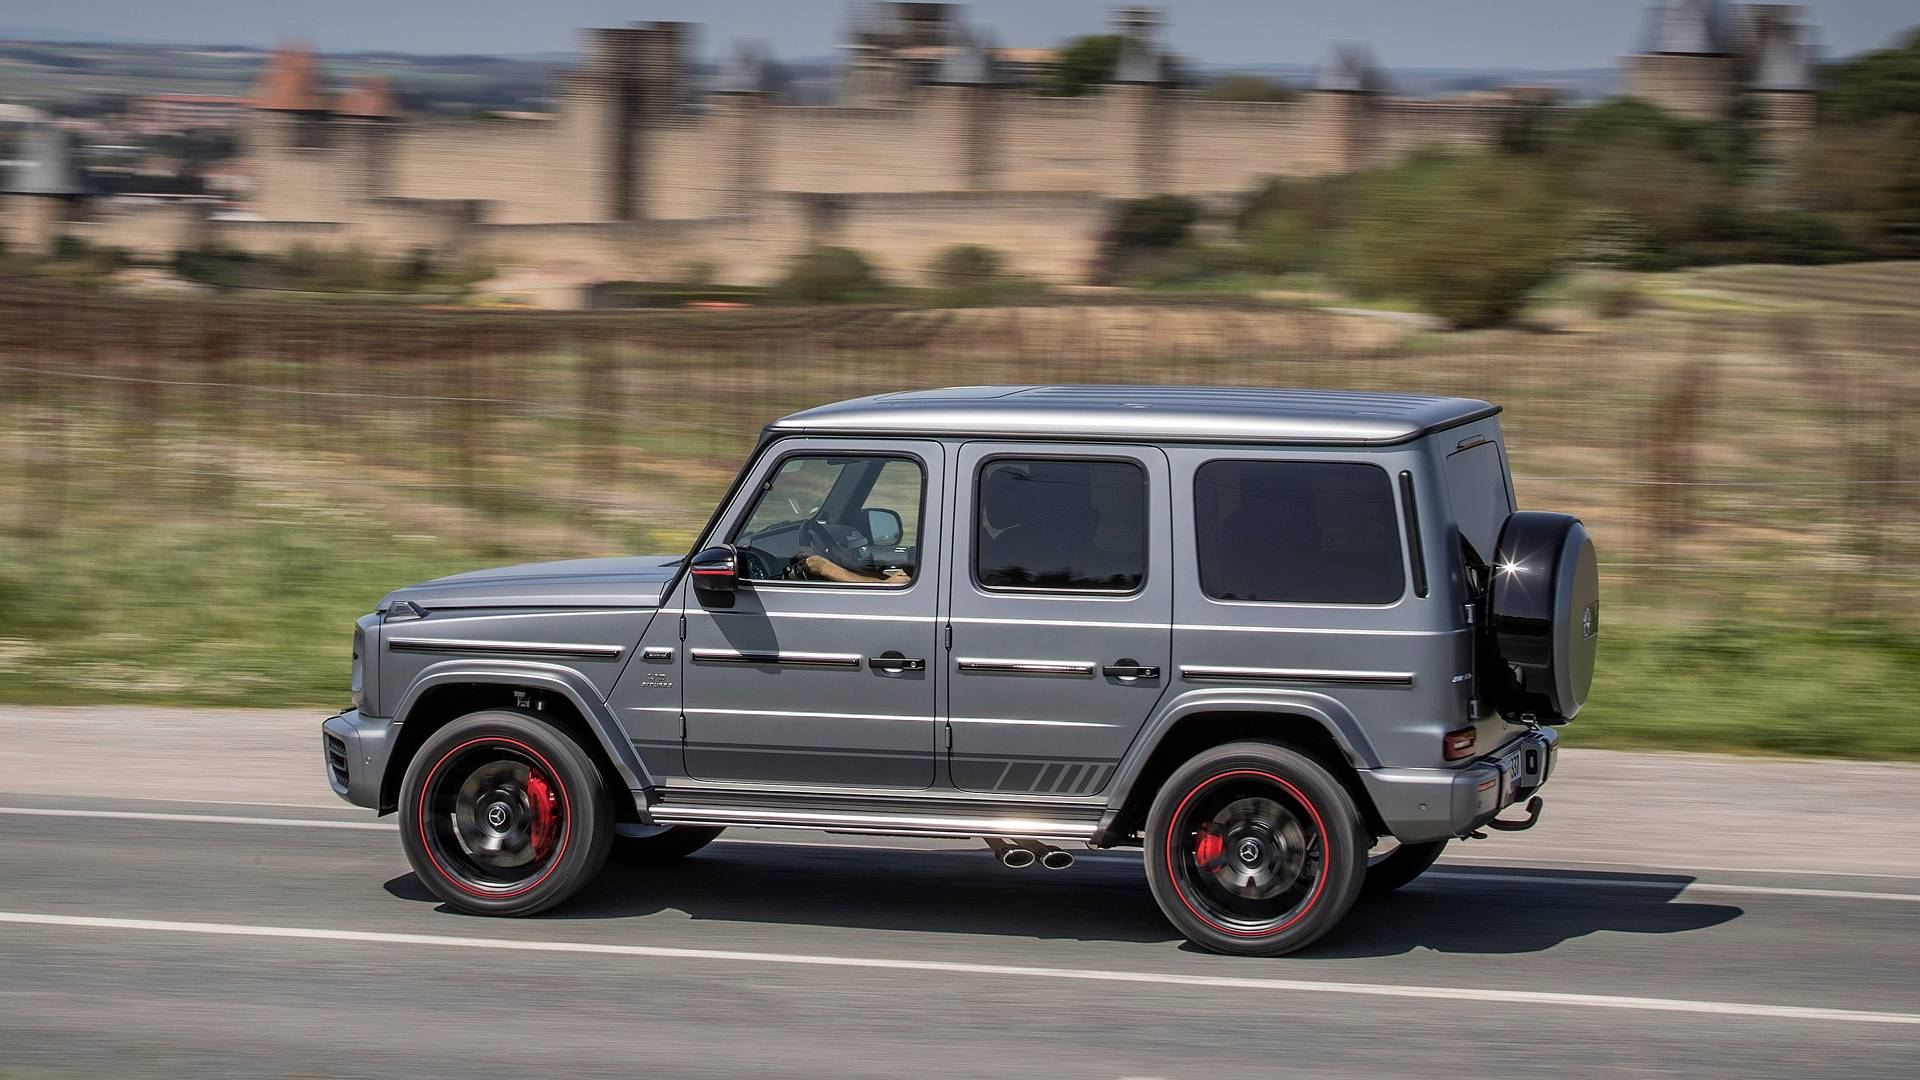 2018 Mercedes Amg G63 First Drive Military Suv With Supercar Swagger